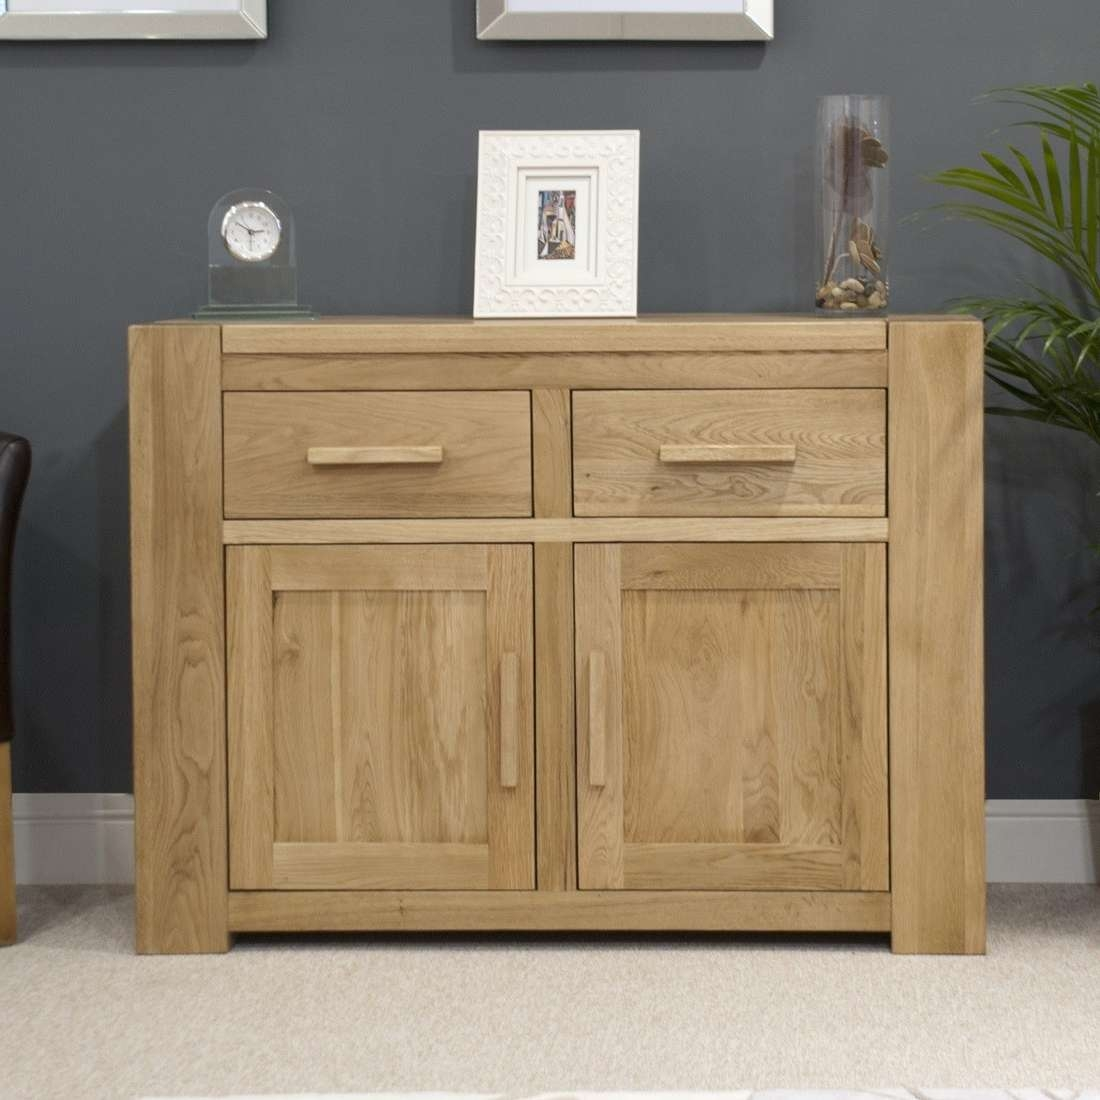 Elegant Small Solid Oak Sideboard – Buildsimplehome Throughout Cream And Oak Sideboards (View 9 of 20)